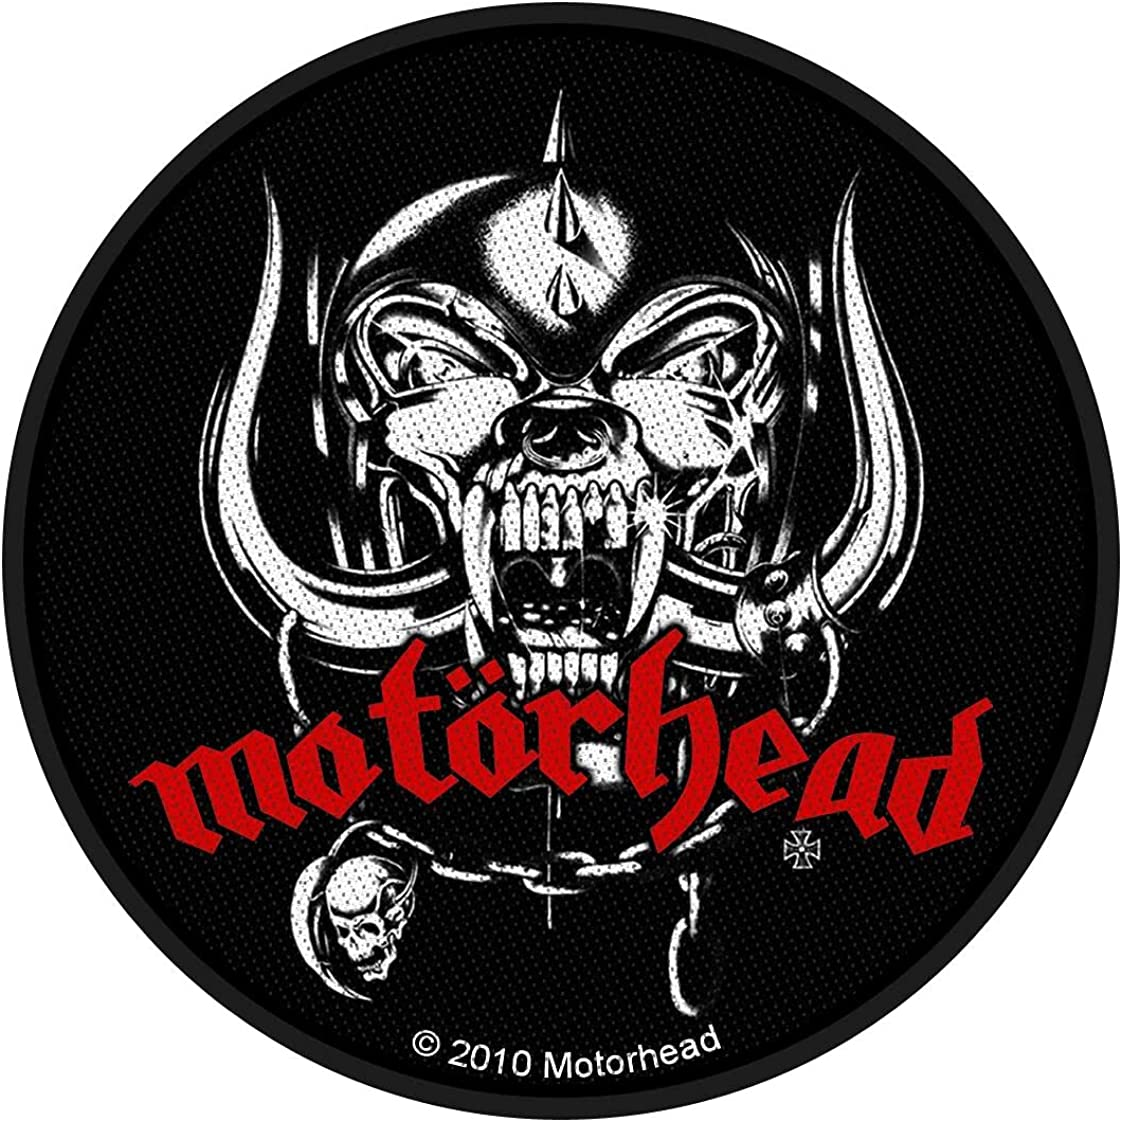 Motorhead OFFicial mail order War Pig Logo Patch Band Heavy Metal Snaggletooth Max 86% OFF Woven